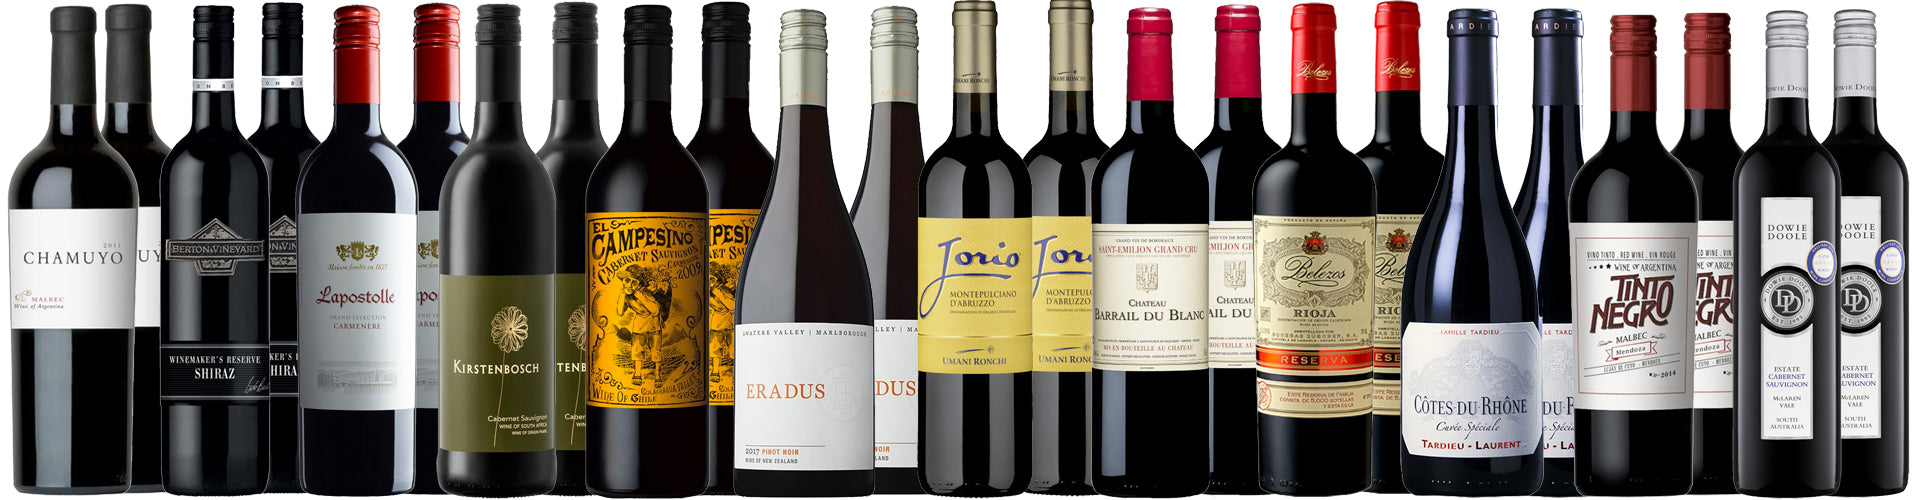 Mixed Collection of Red Wine Styles and Types